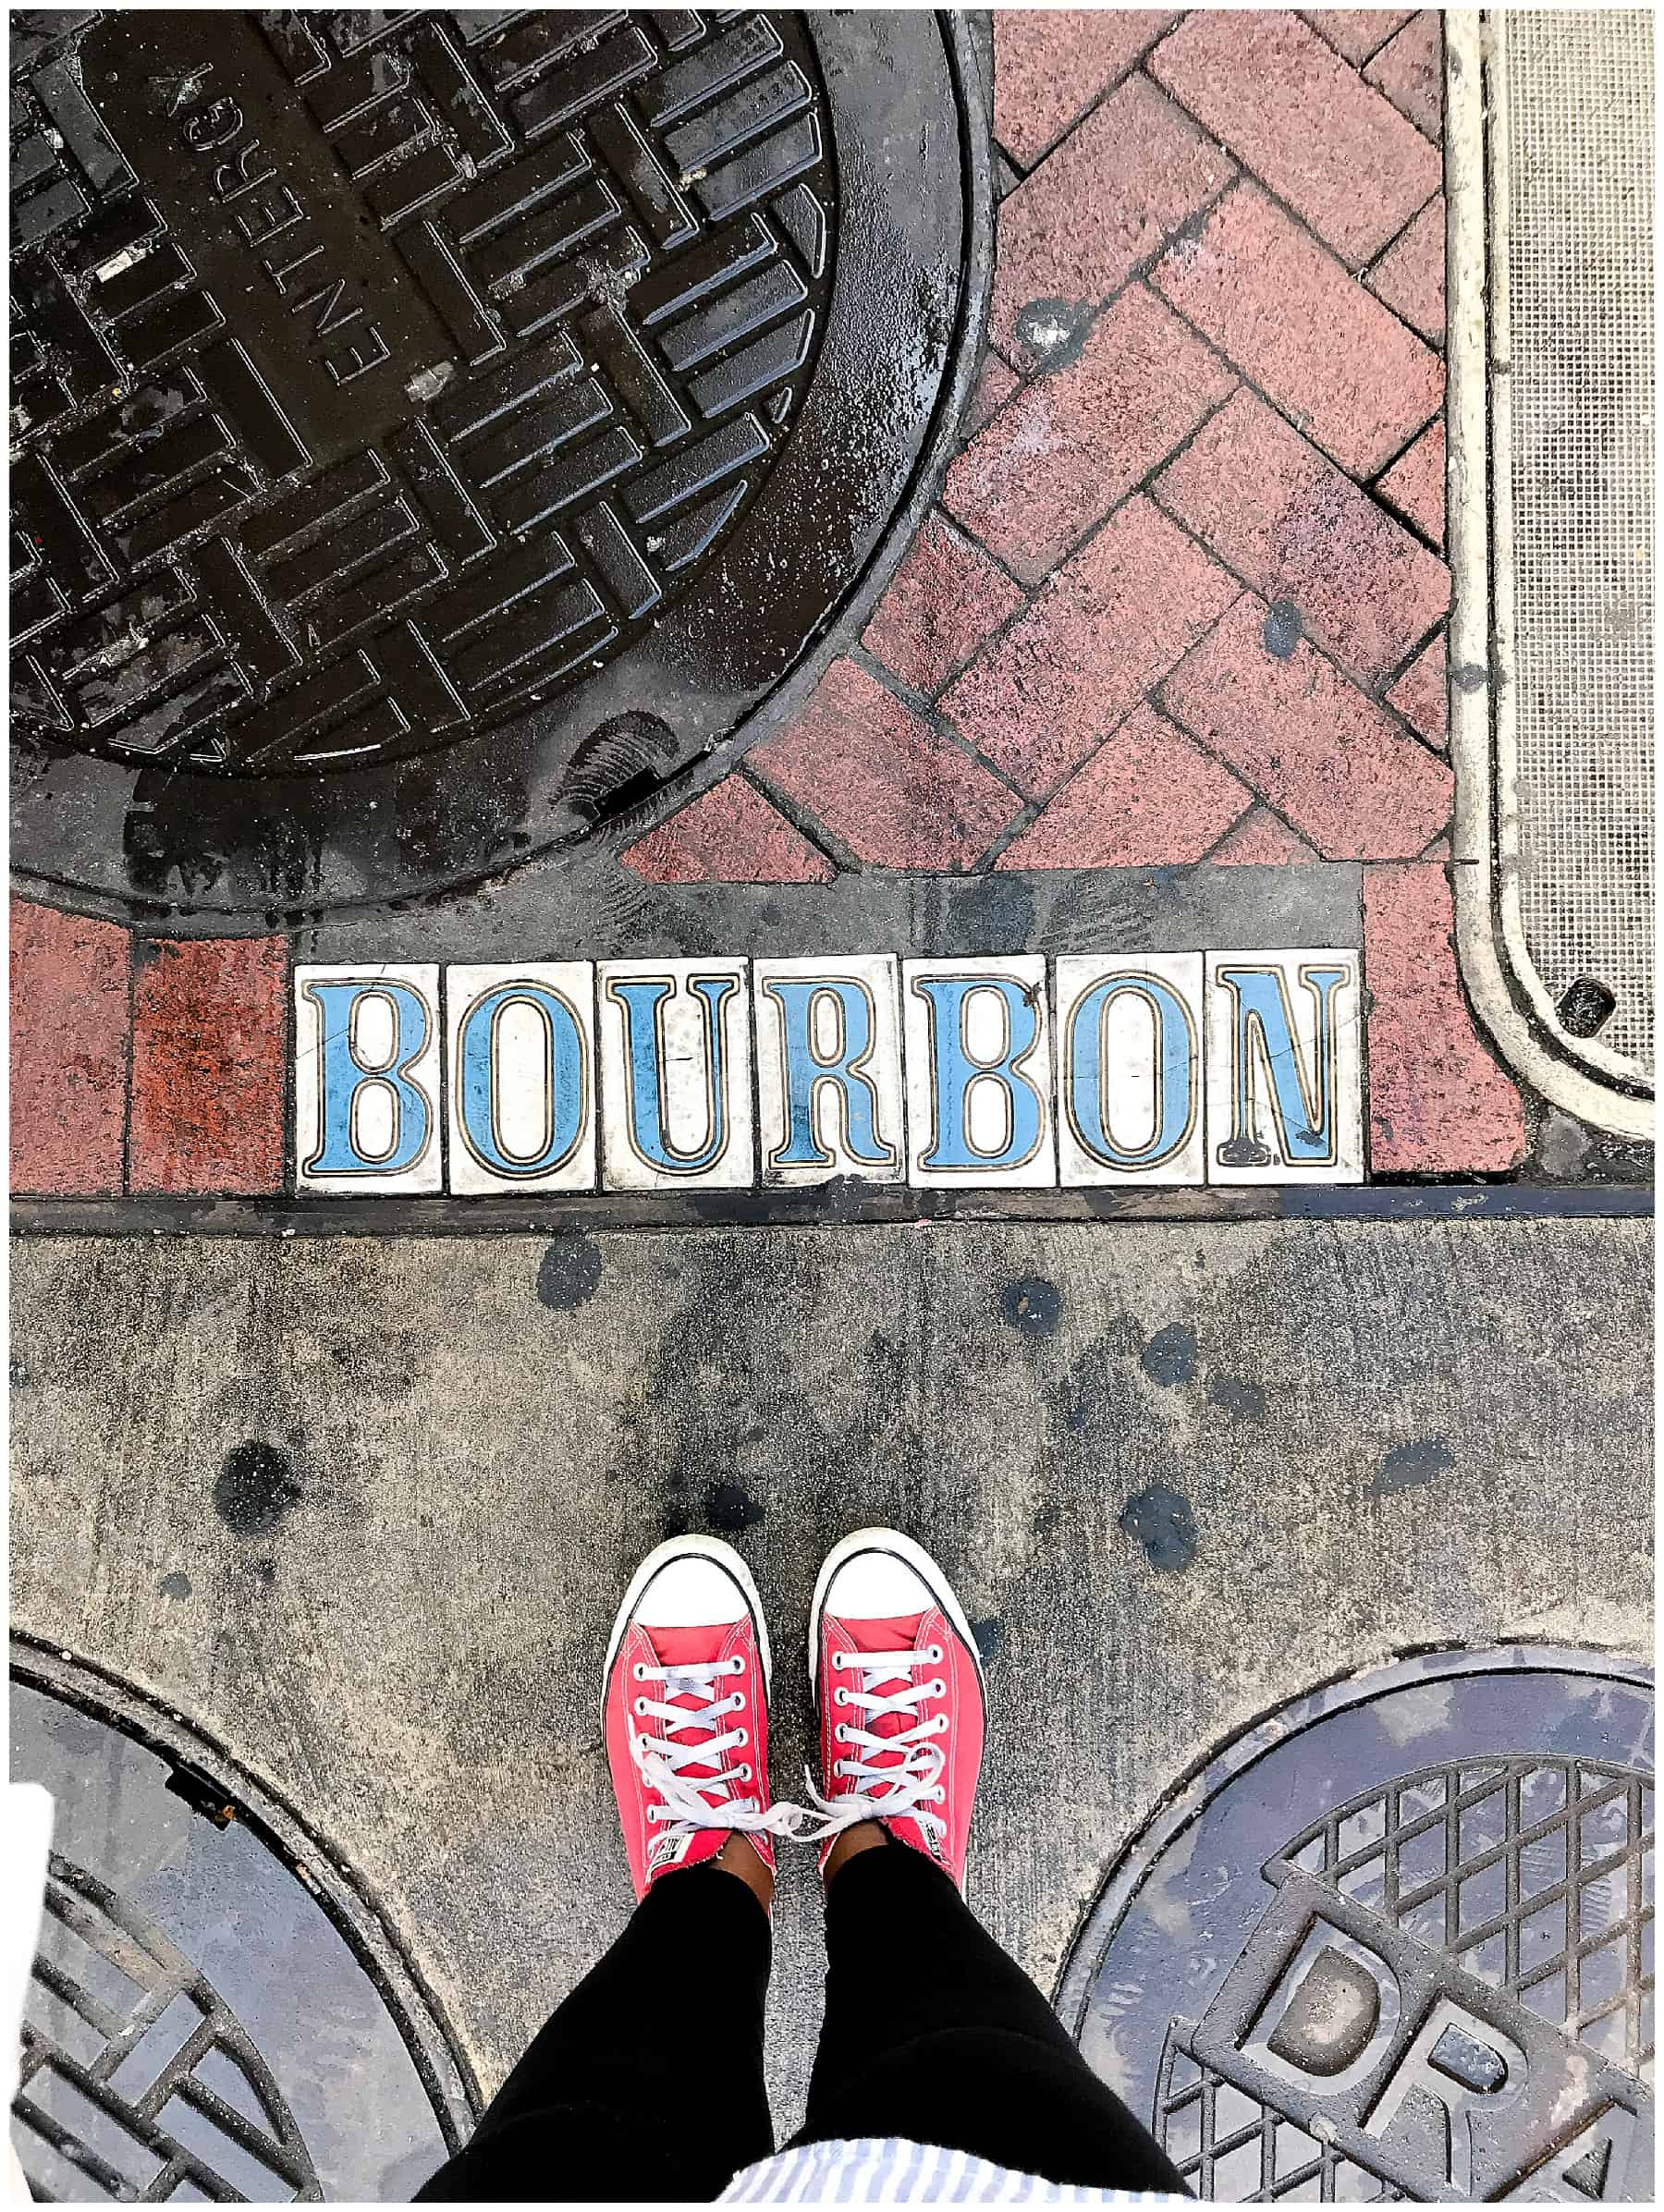 walking though new orleans on bourbon street